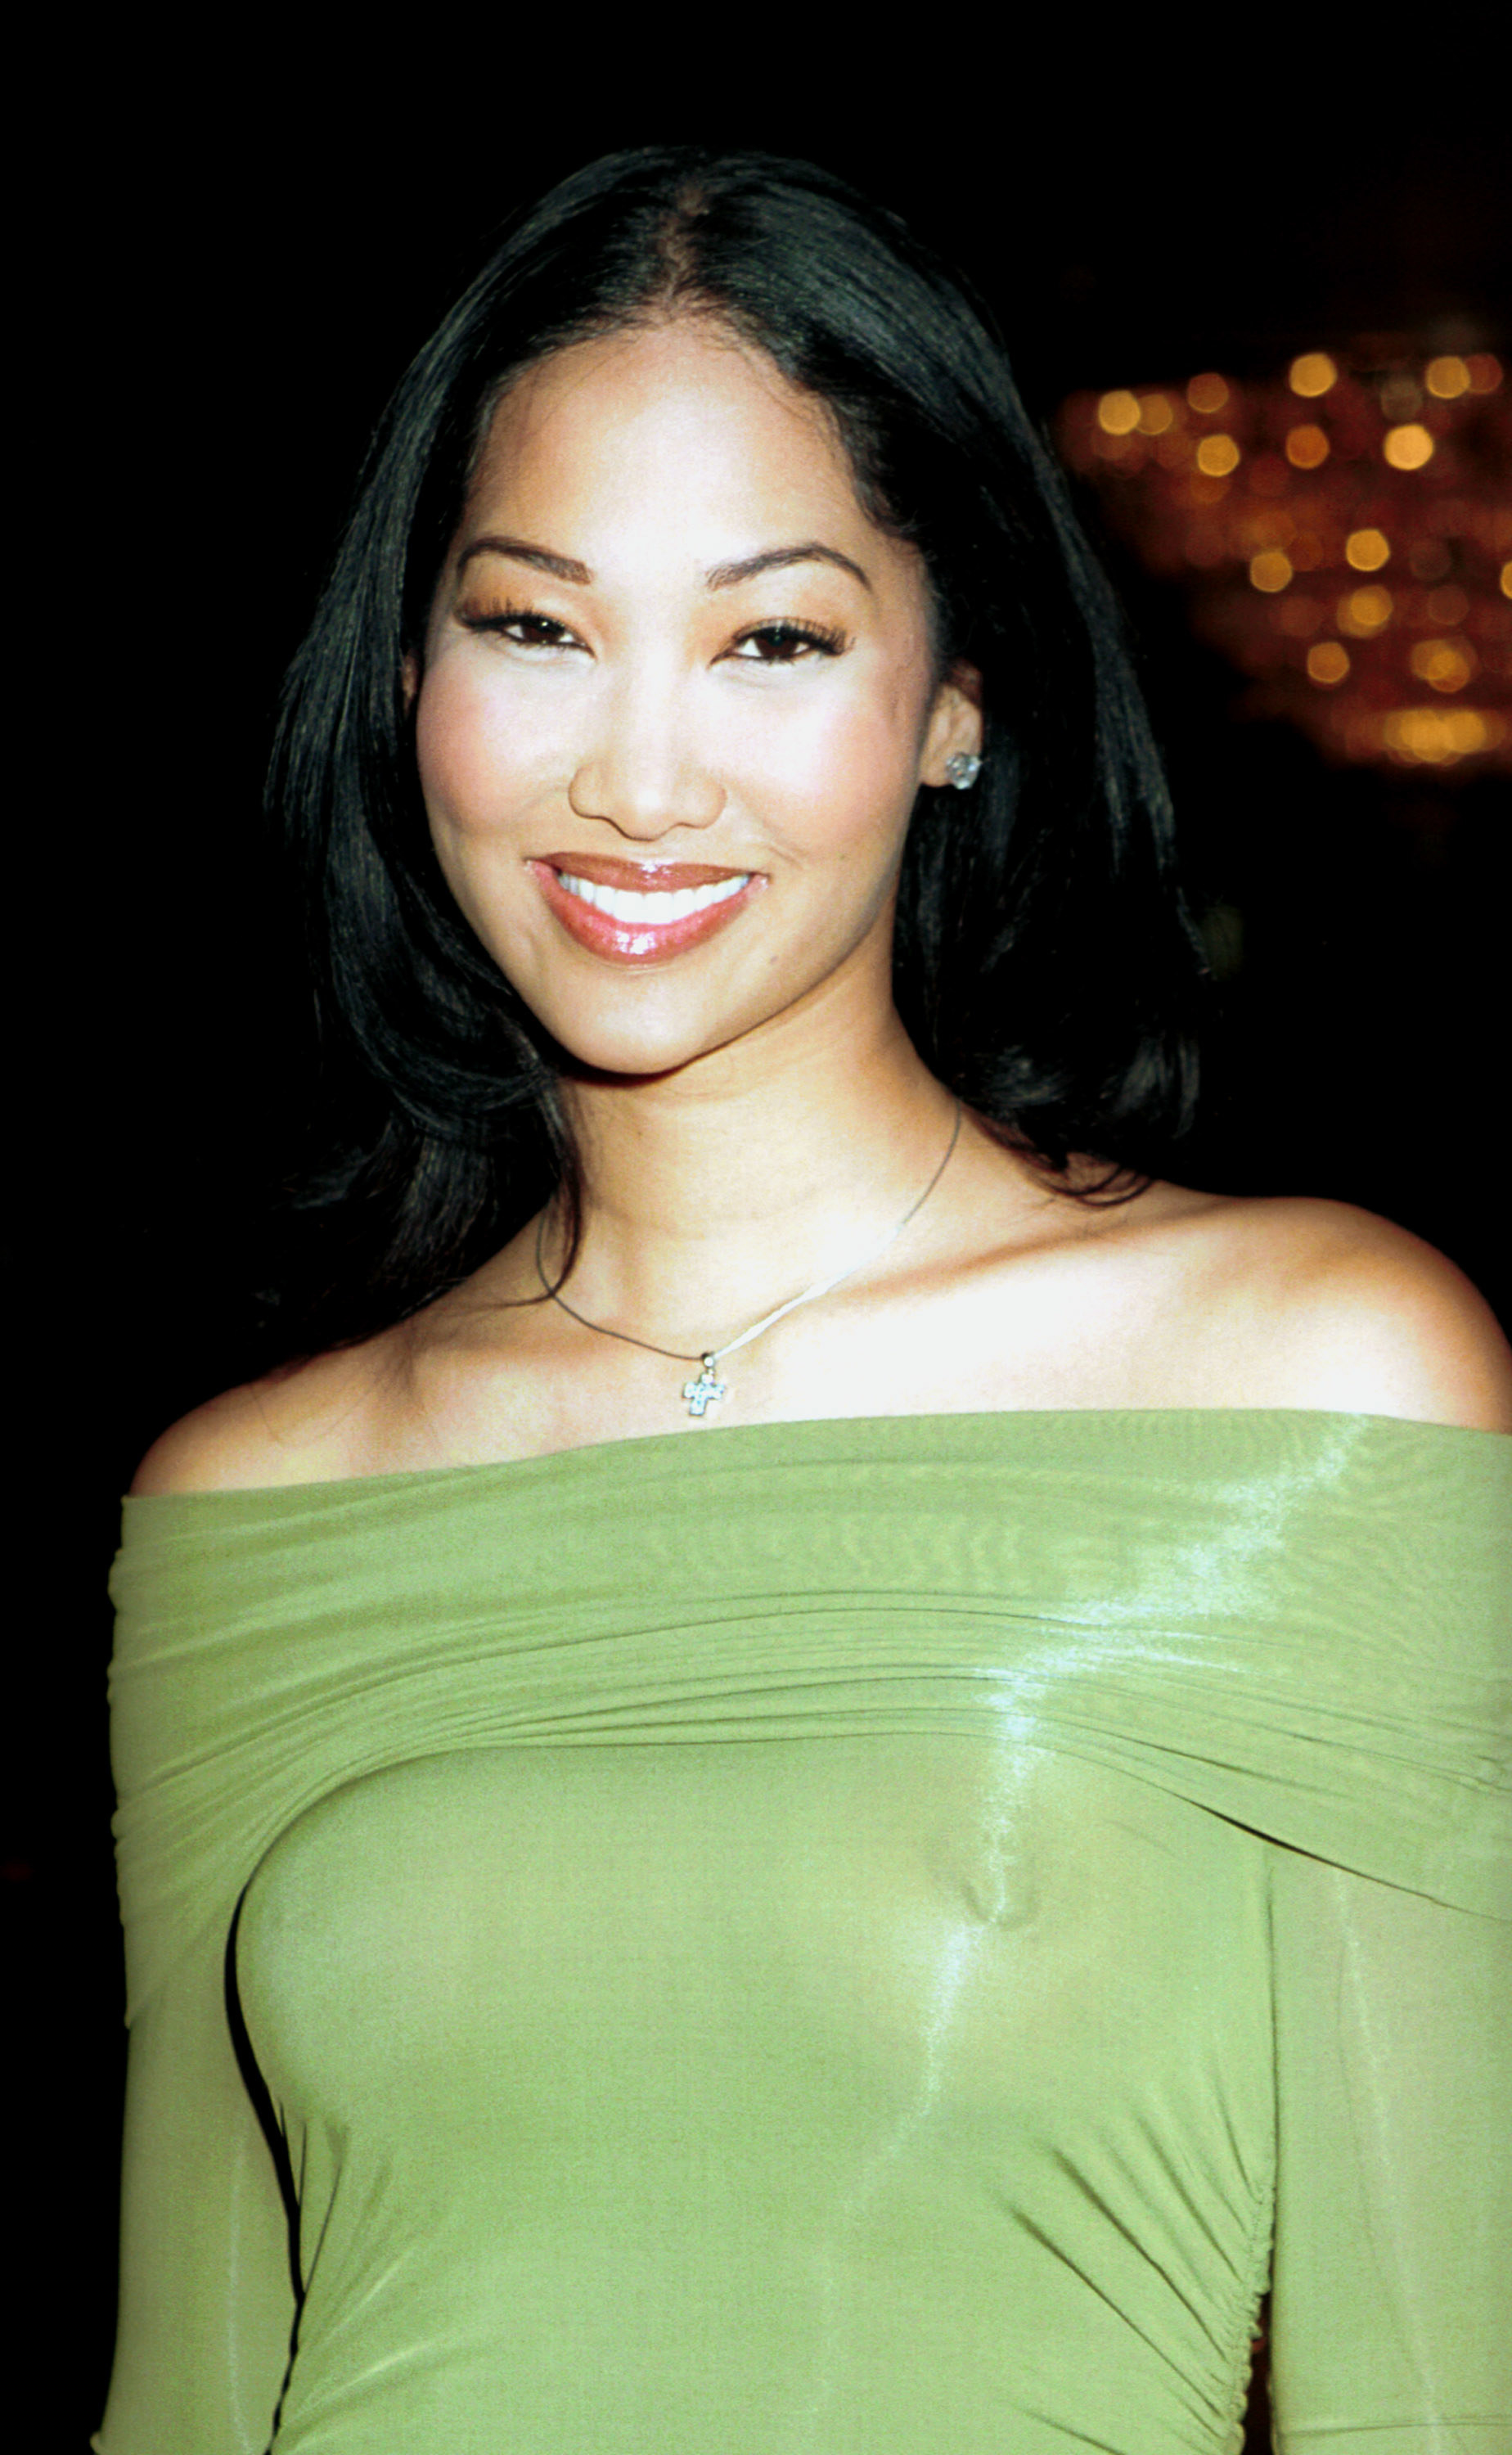 Kimora Lee Simmons with her hair down and straight, wearing a sheer green dress